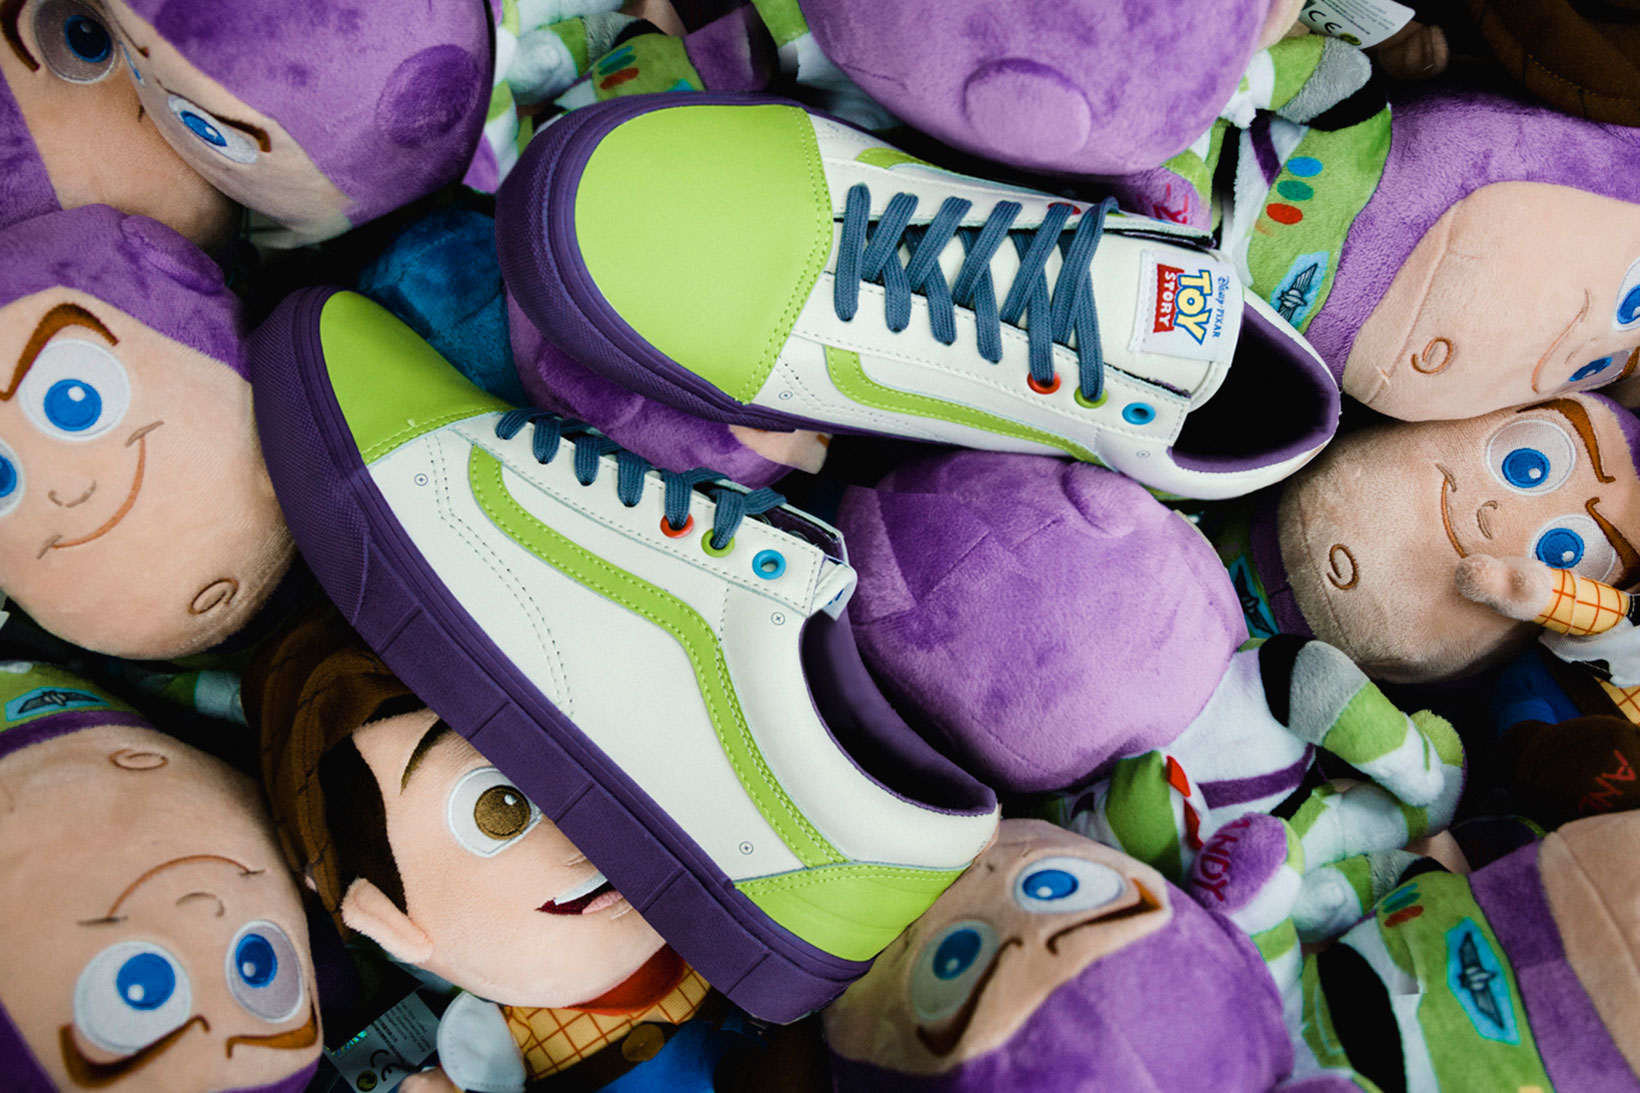 A Closer Look at the 'Toy Story' x Vans Footwear Collection